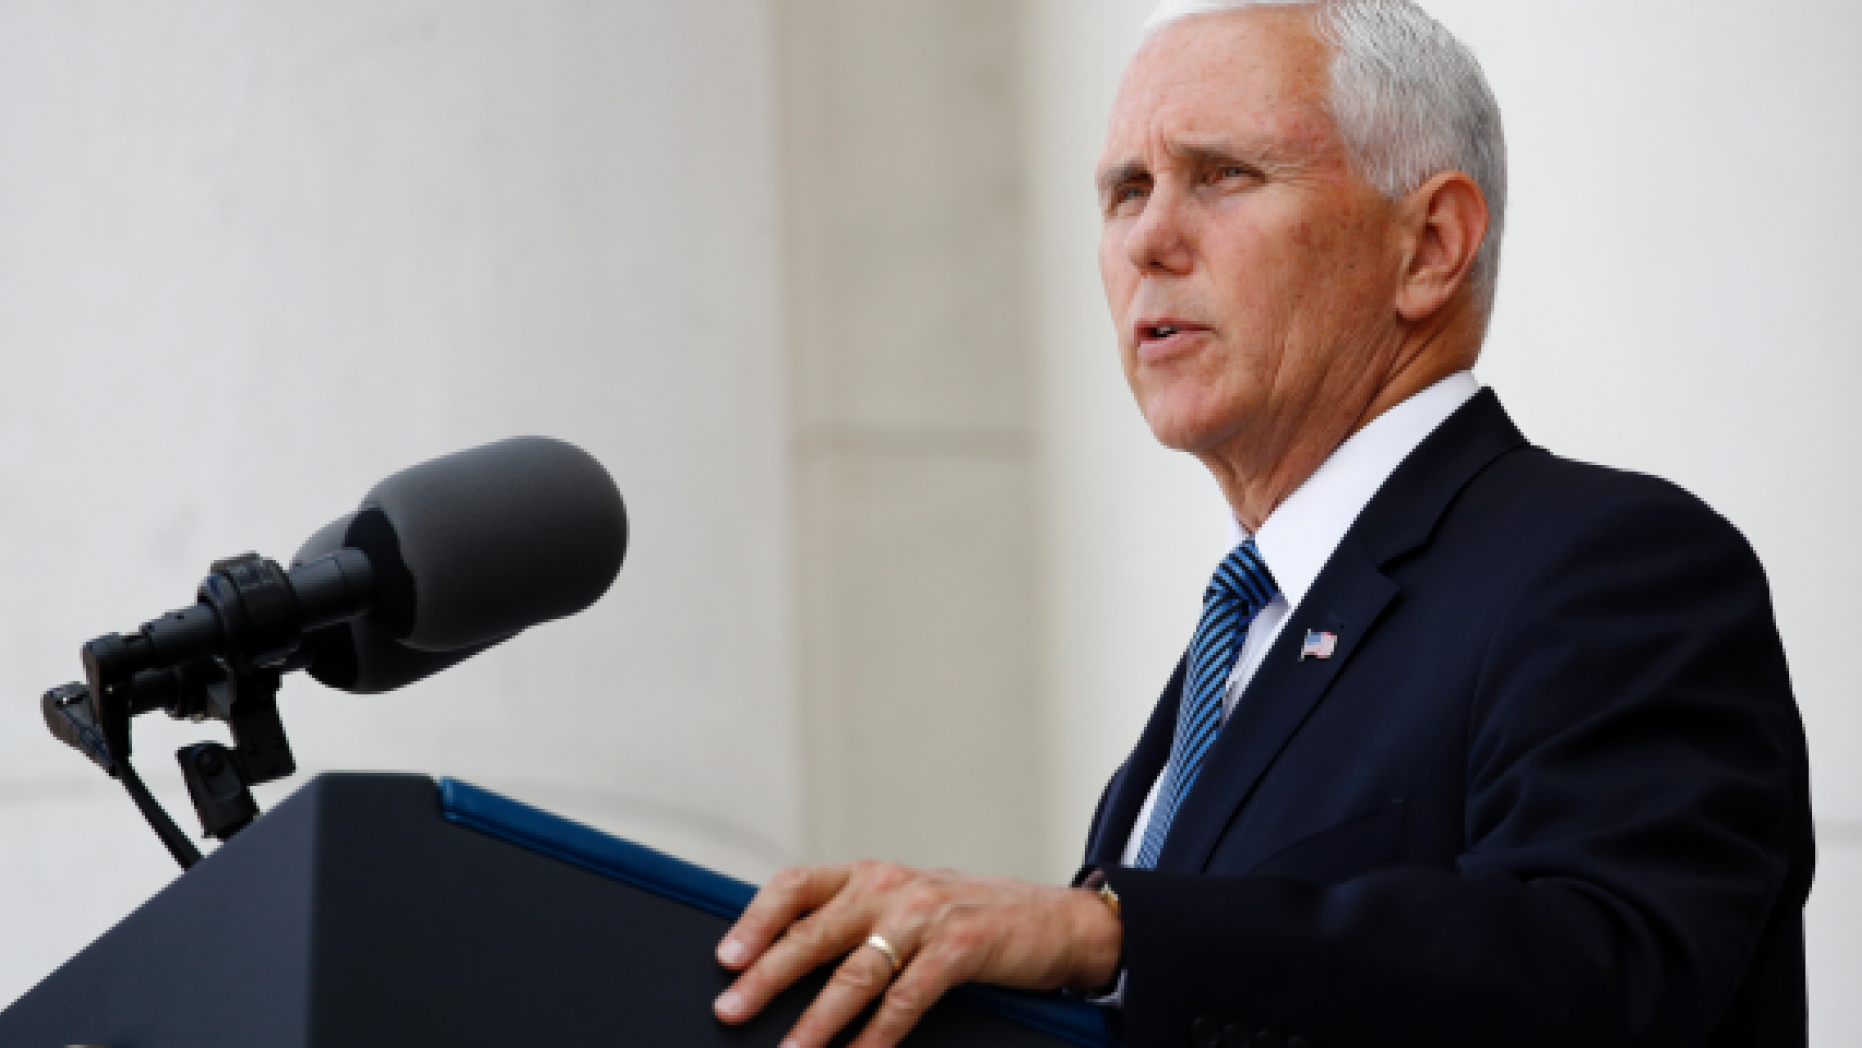 Vice President Mike Pence speaks at a Memorial Day ceremony after placing a wreath in front of the Tomb of the Unknown Soldier, Monday, May 27, 2019, at Arlington National Cemetery in Arlington, Va. (AP Photo/Patrick Semansky)